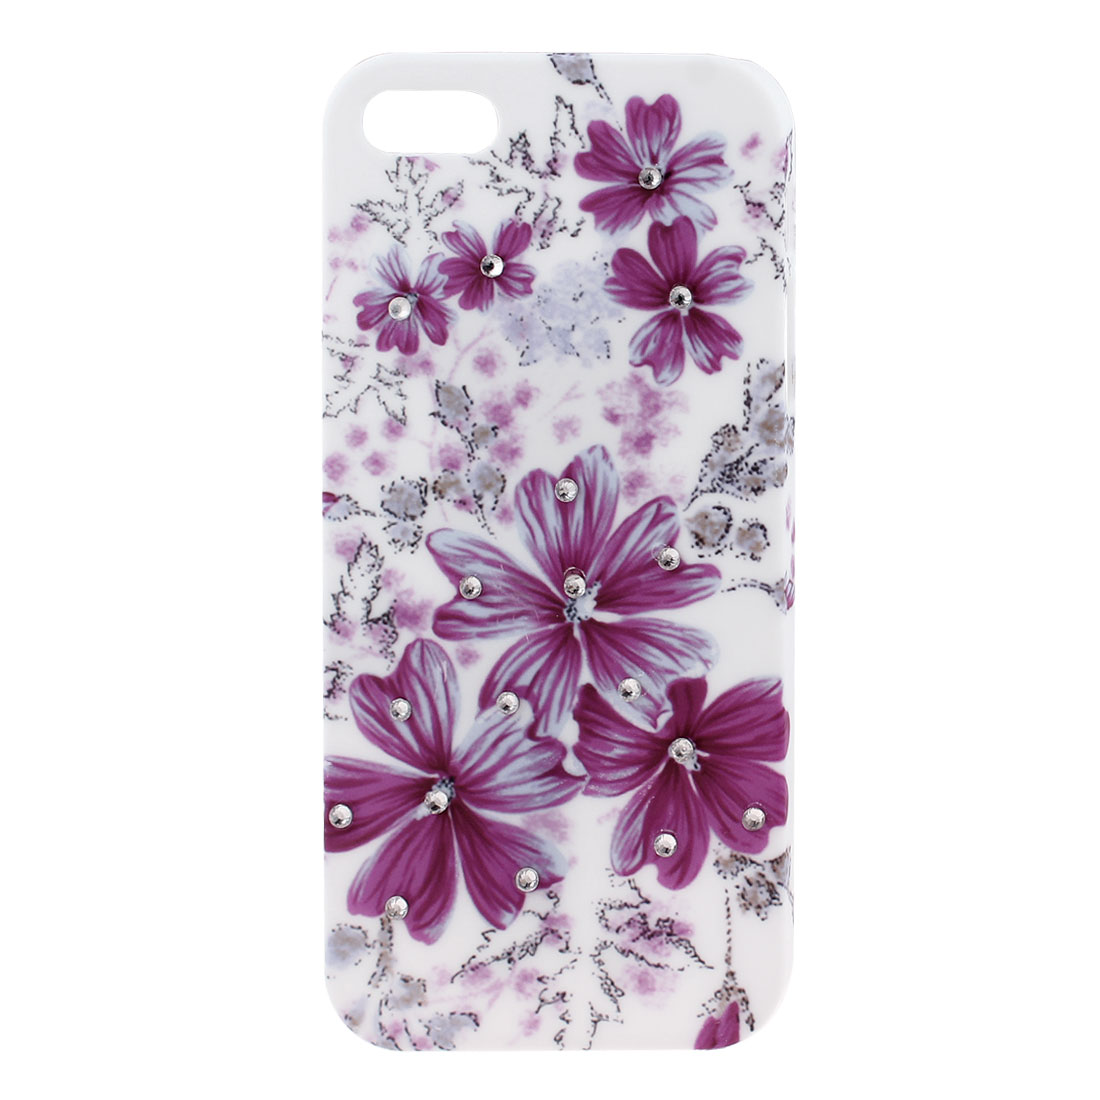 Glitter Rhinestone Decor Violet Flower Hard Back Case Cover White for iPhone 5 5G